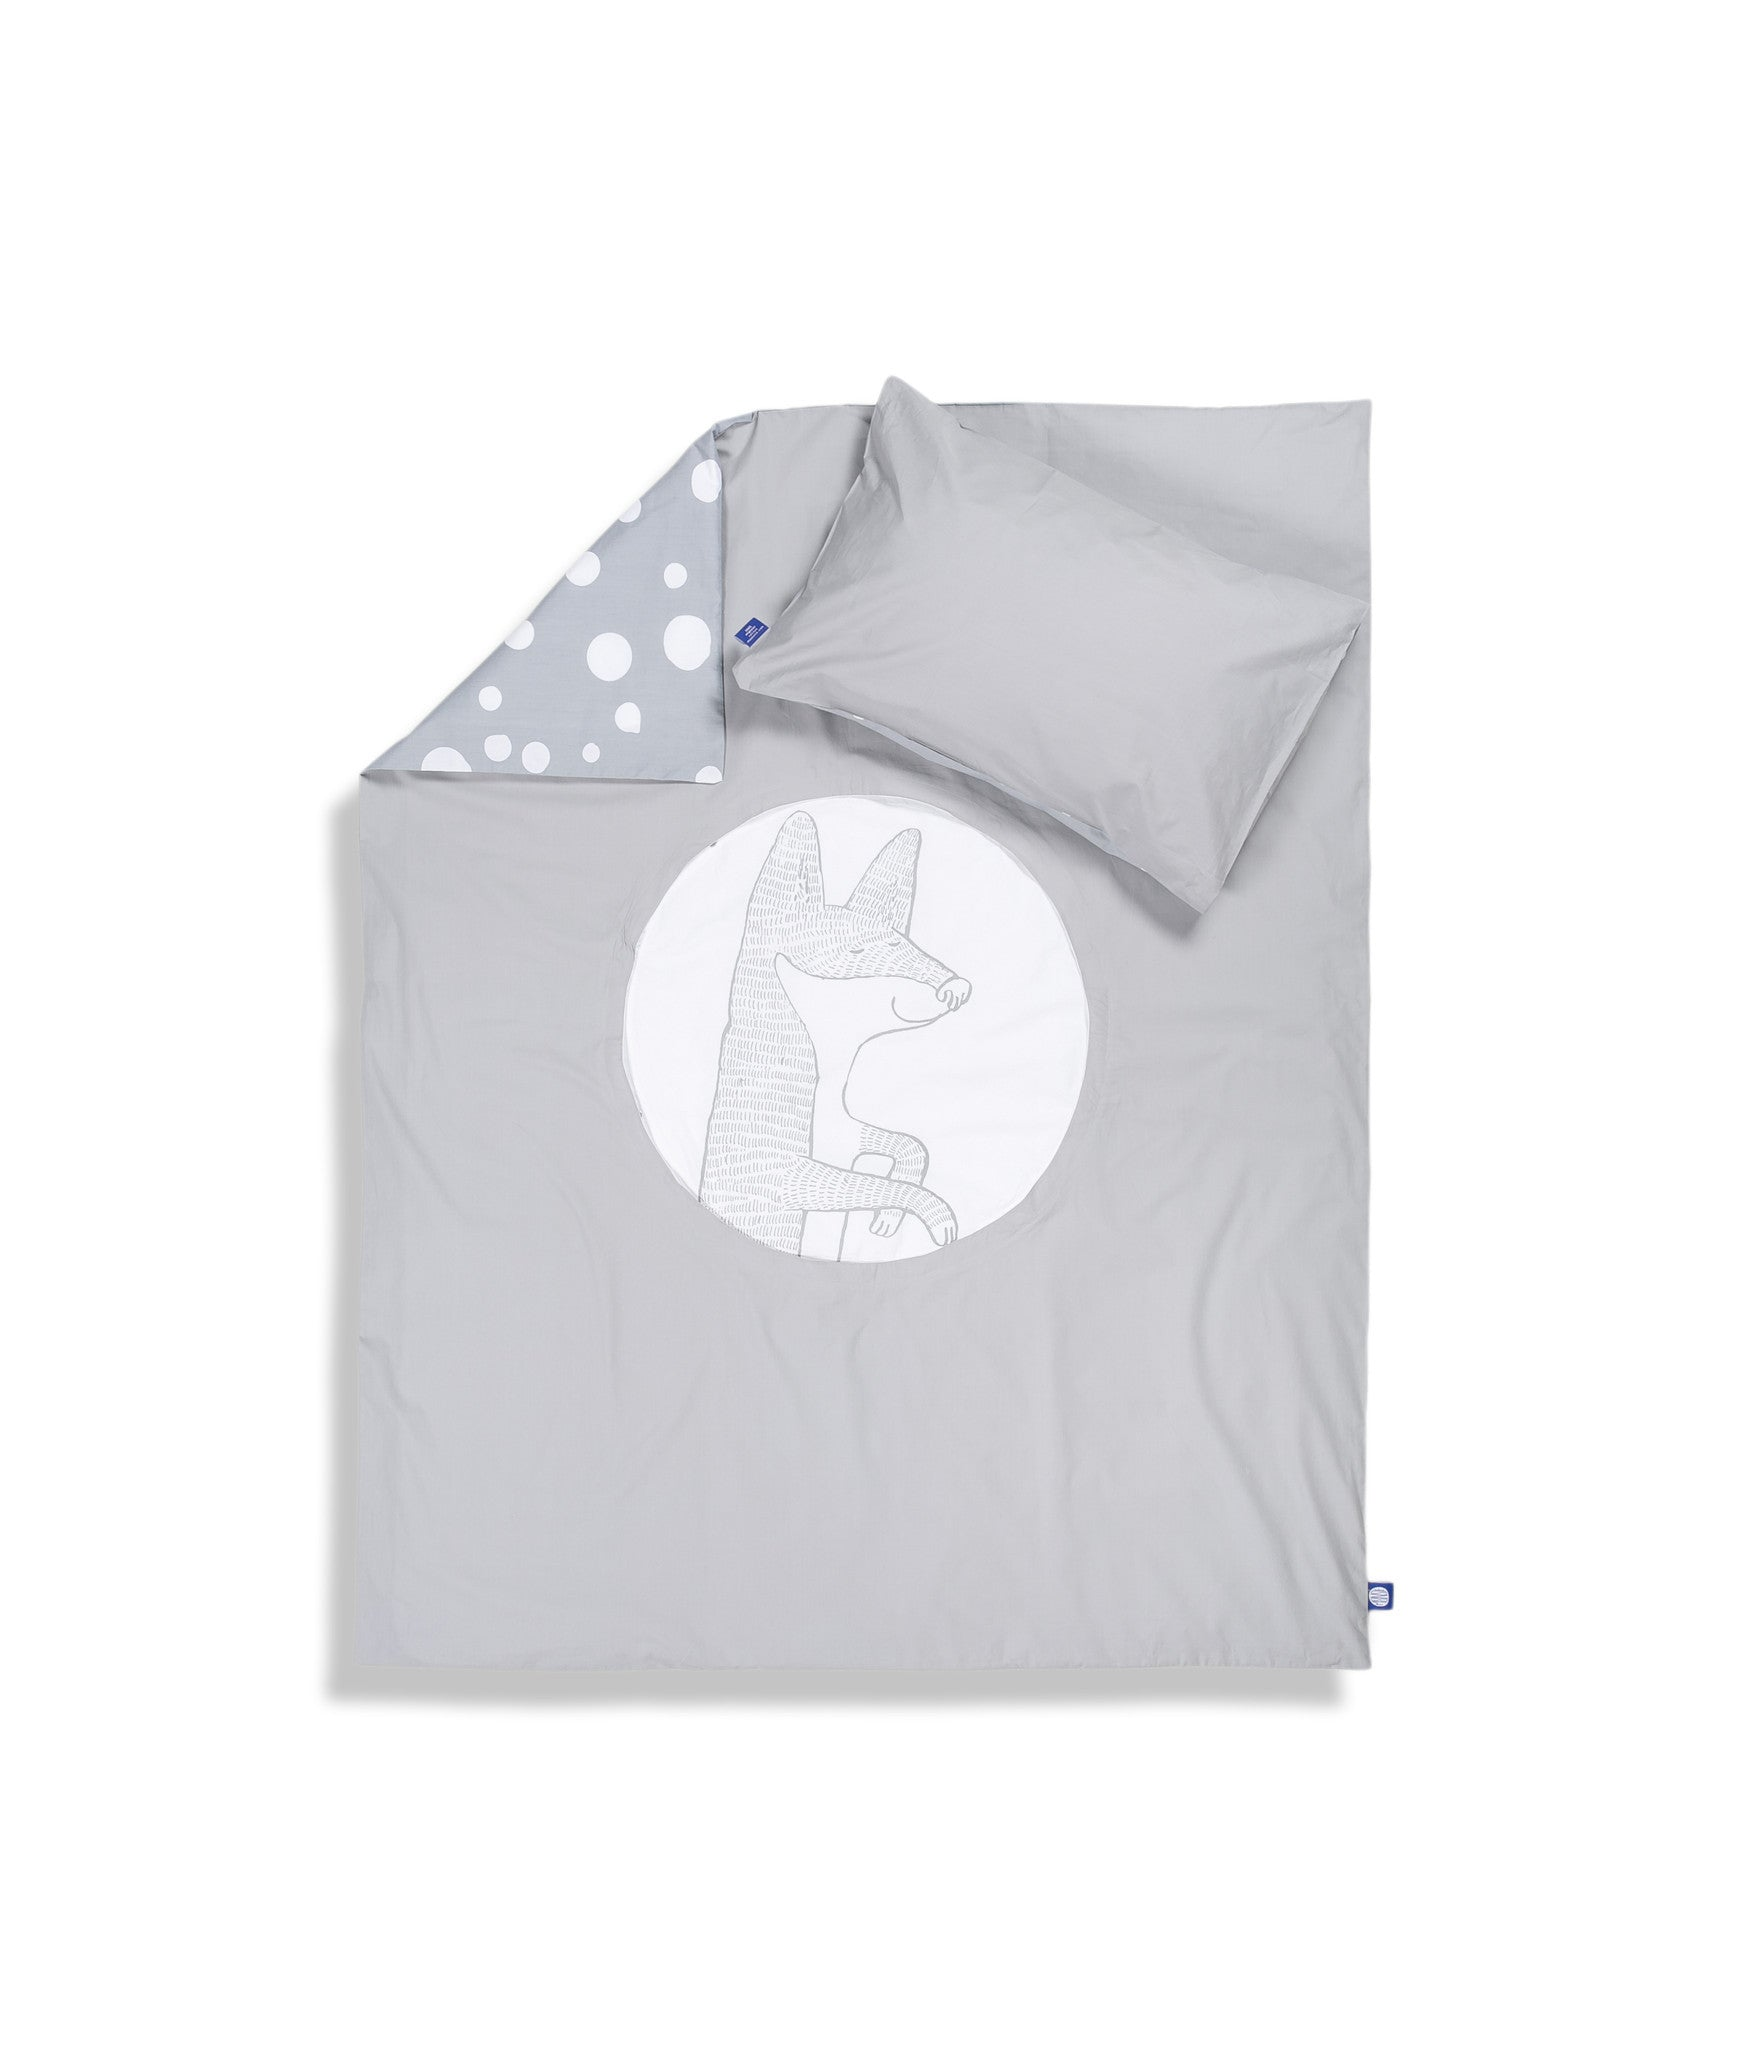 Organic cotton grey cot bed set. Baby bedding. Grey colour. Pillow case and duvet cover. Dotted pattern bed linen. Main character fox Luna.